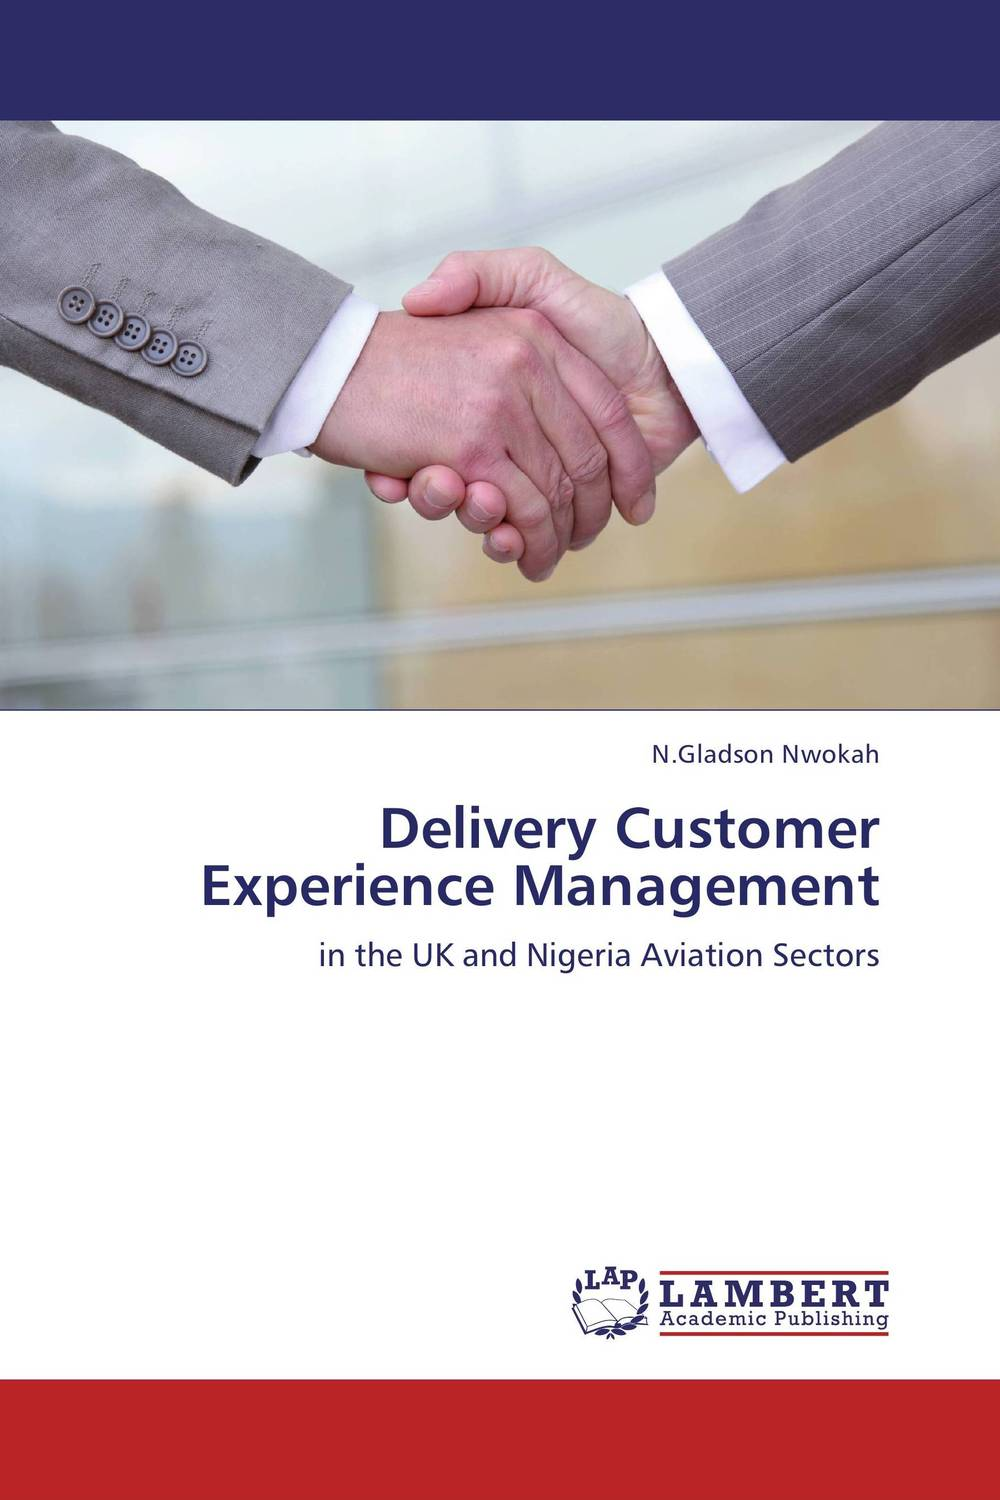 Delivery Customer Experience Management managing the store